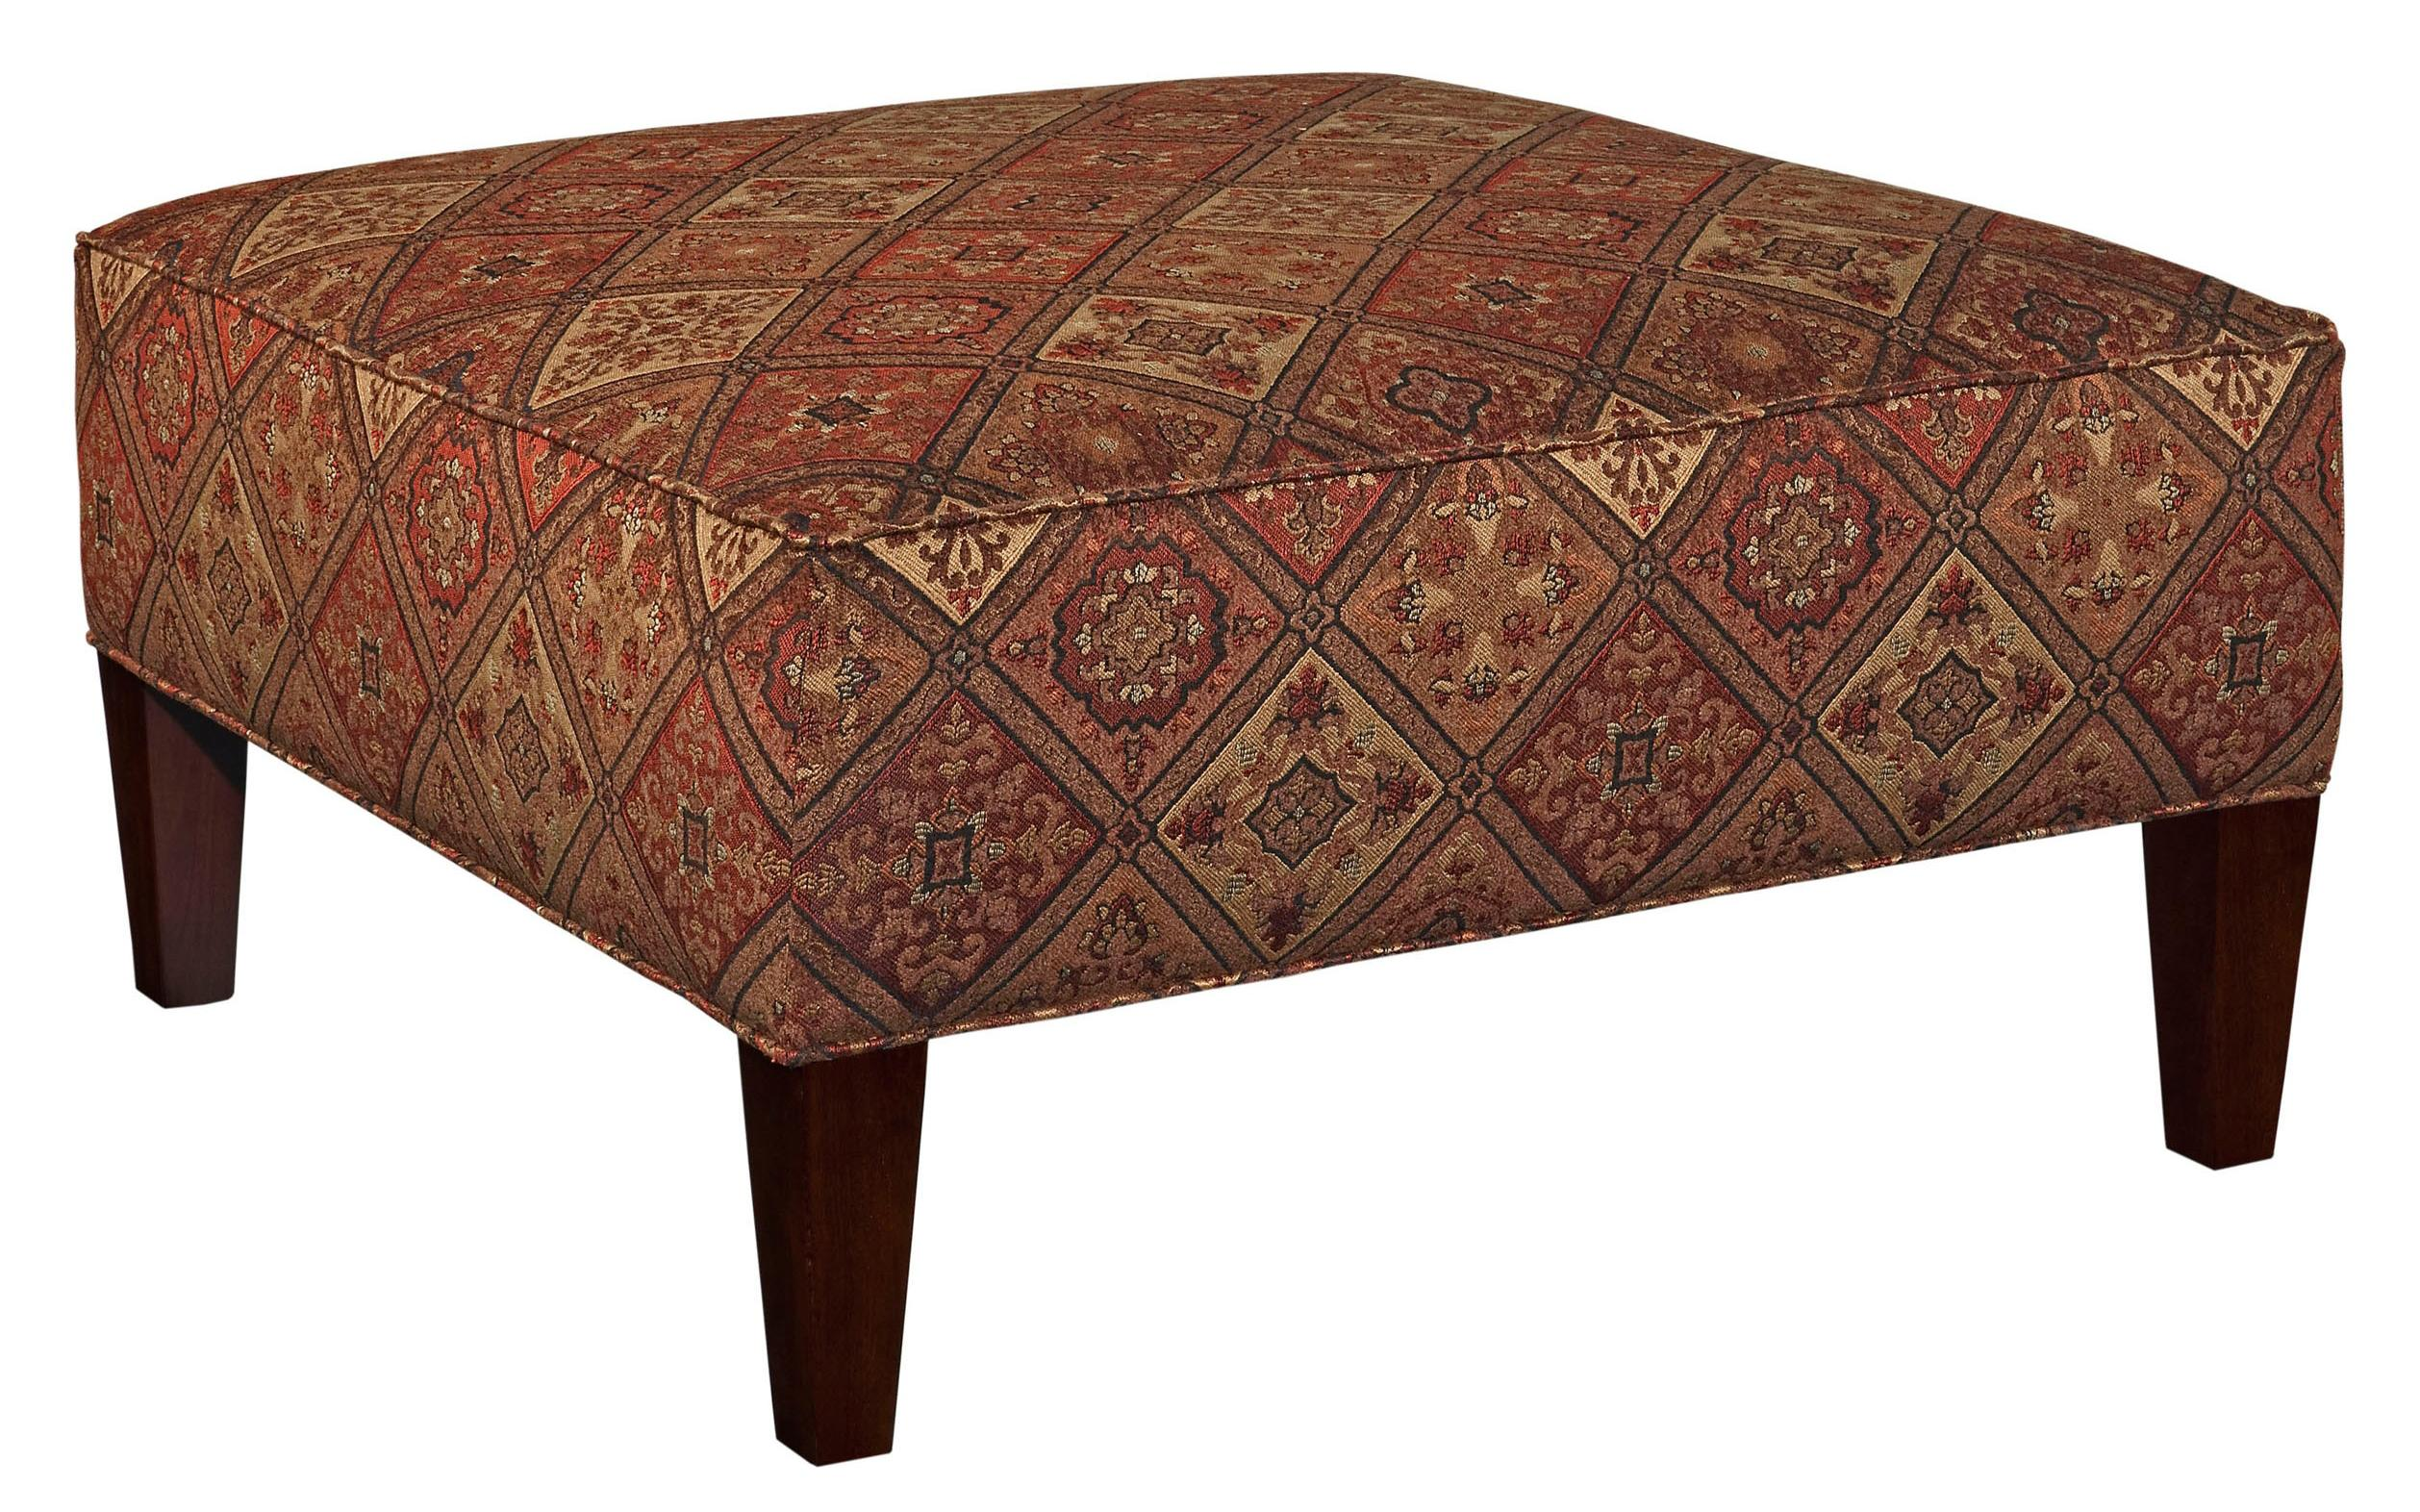 Broyhill Furniture Ottomans Cocktail Ottoman - Item Number: 9887-5